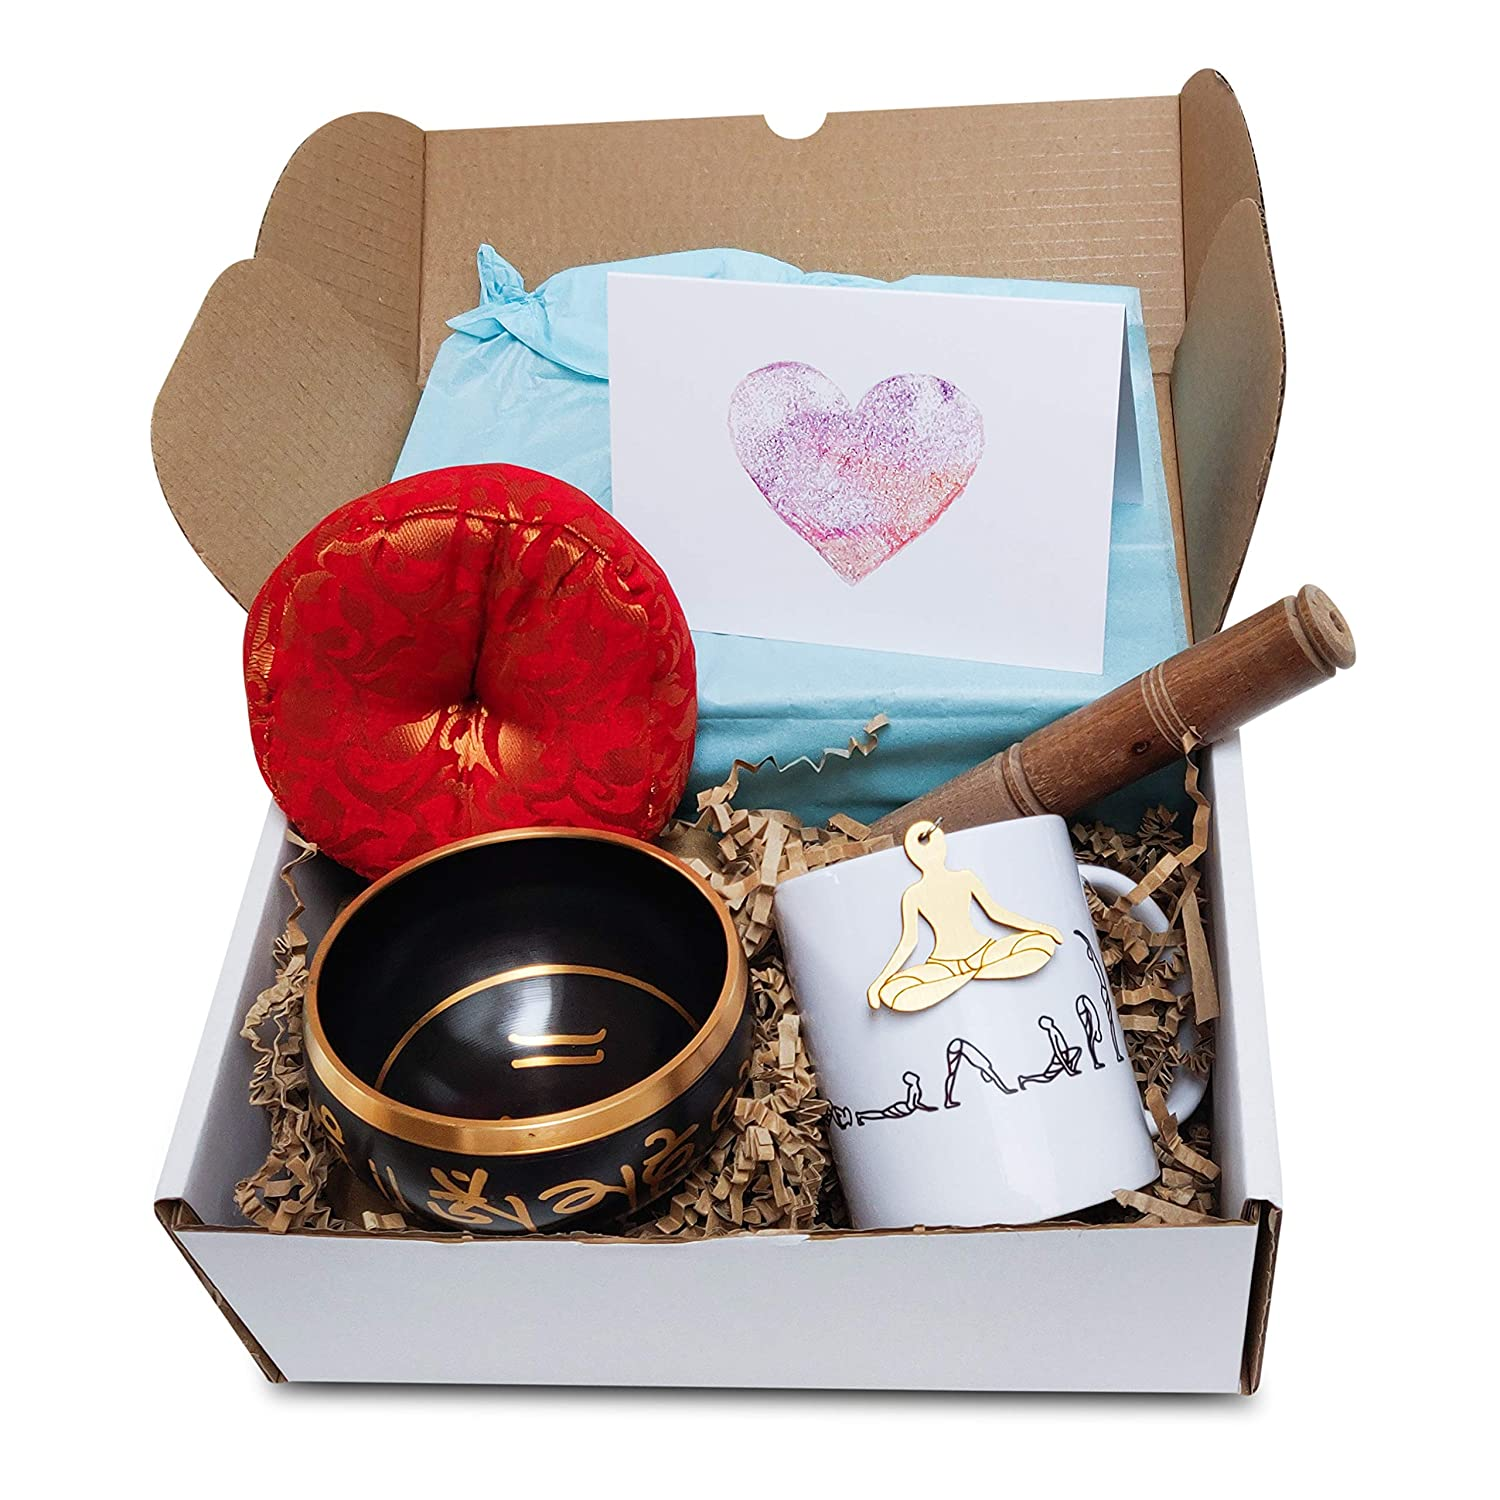 Mug /& Key Chain. Cushion Yoga Gift Hamper Stick Exclusive Gift Hamper Made for Yoga Lovers with The Singing Bowl